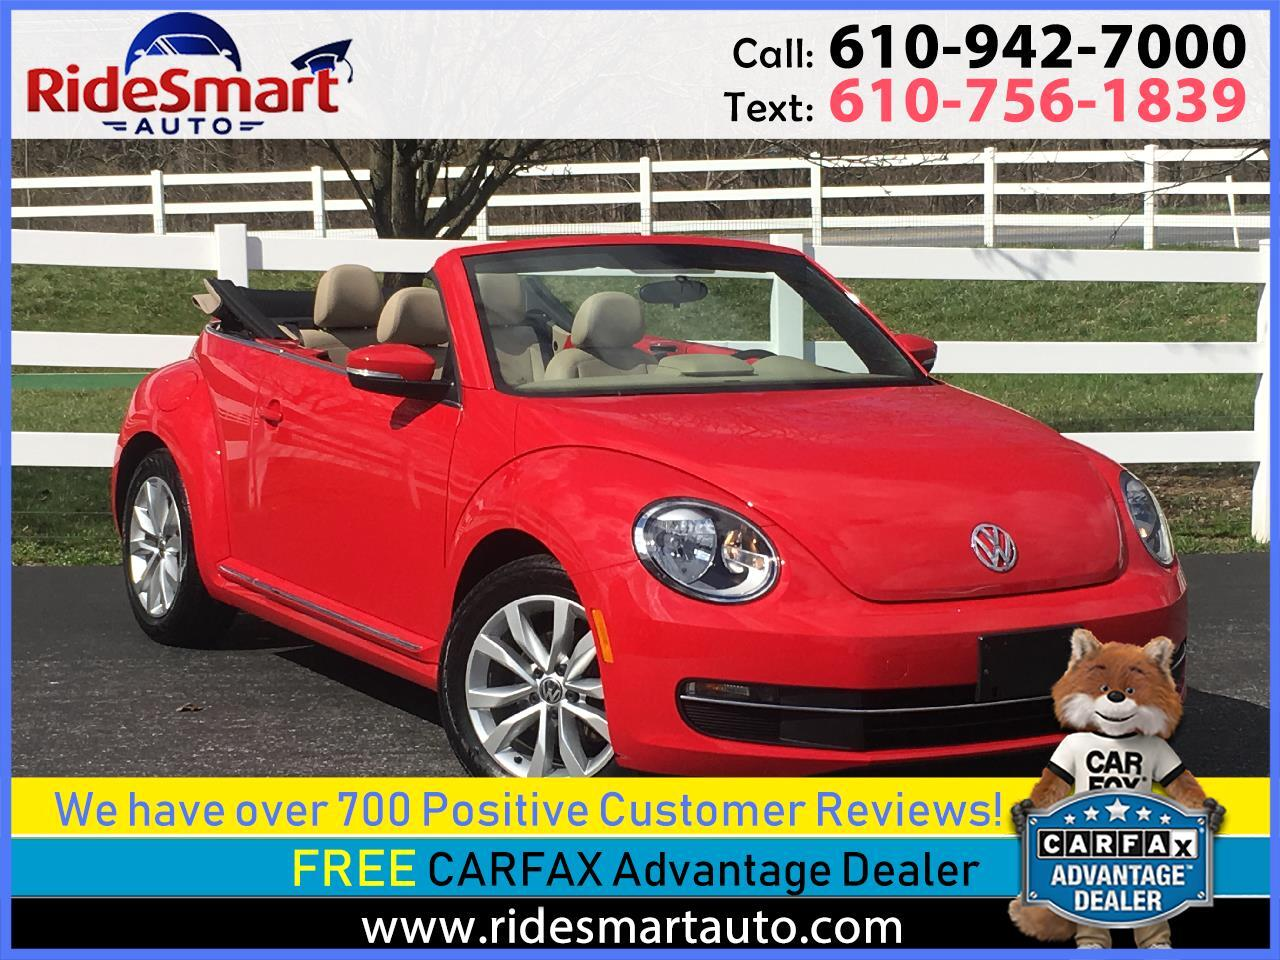 2013 Volkswagen Beetle 2.0t Turbo Diesel Convertible 6 Speed Trans